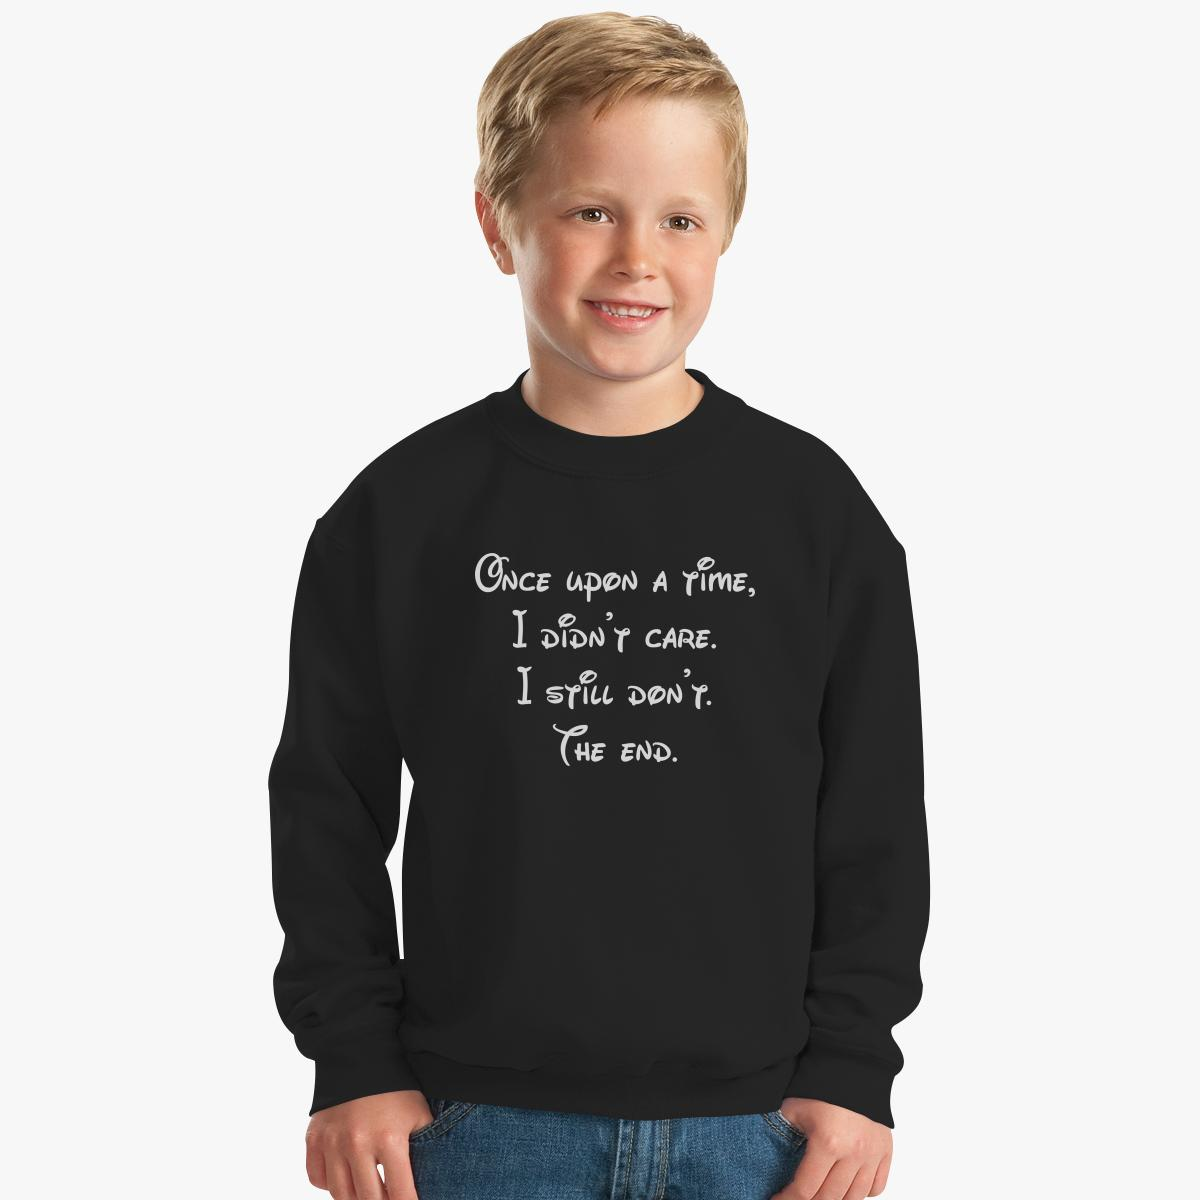 Once Upon A Time, I Didn't Care. I Still Don't. The End Kids Sweatshirt